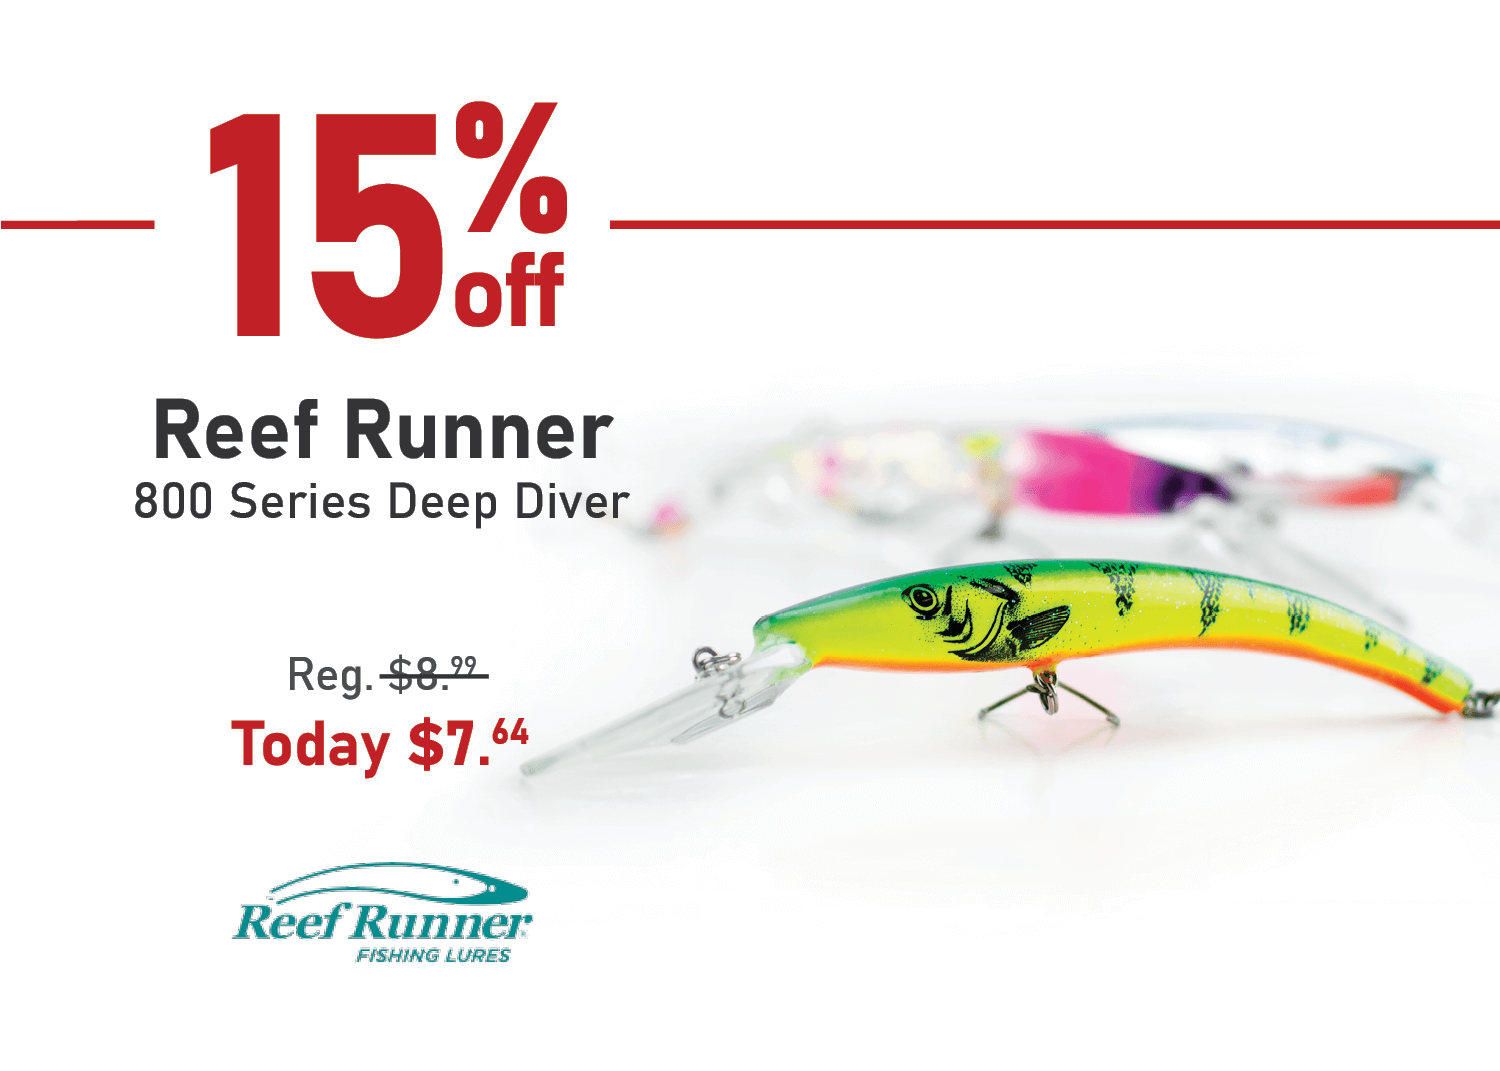 Save 15% on the Reef Runner 800 Series Deep Diver